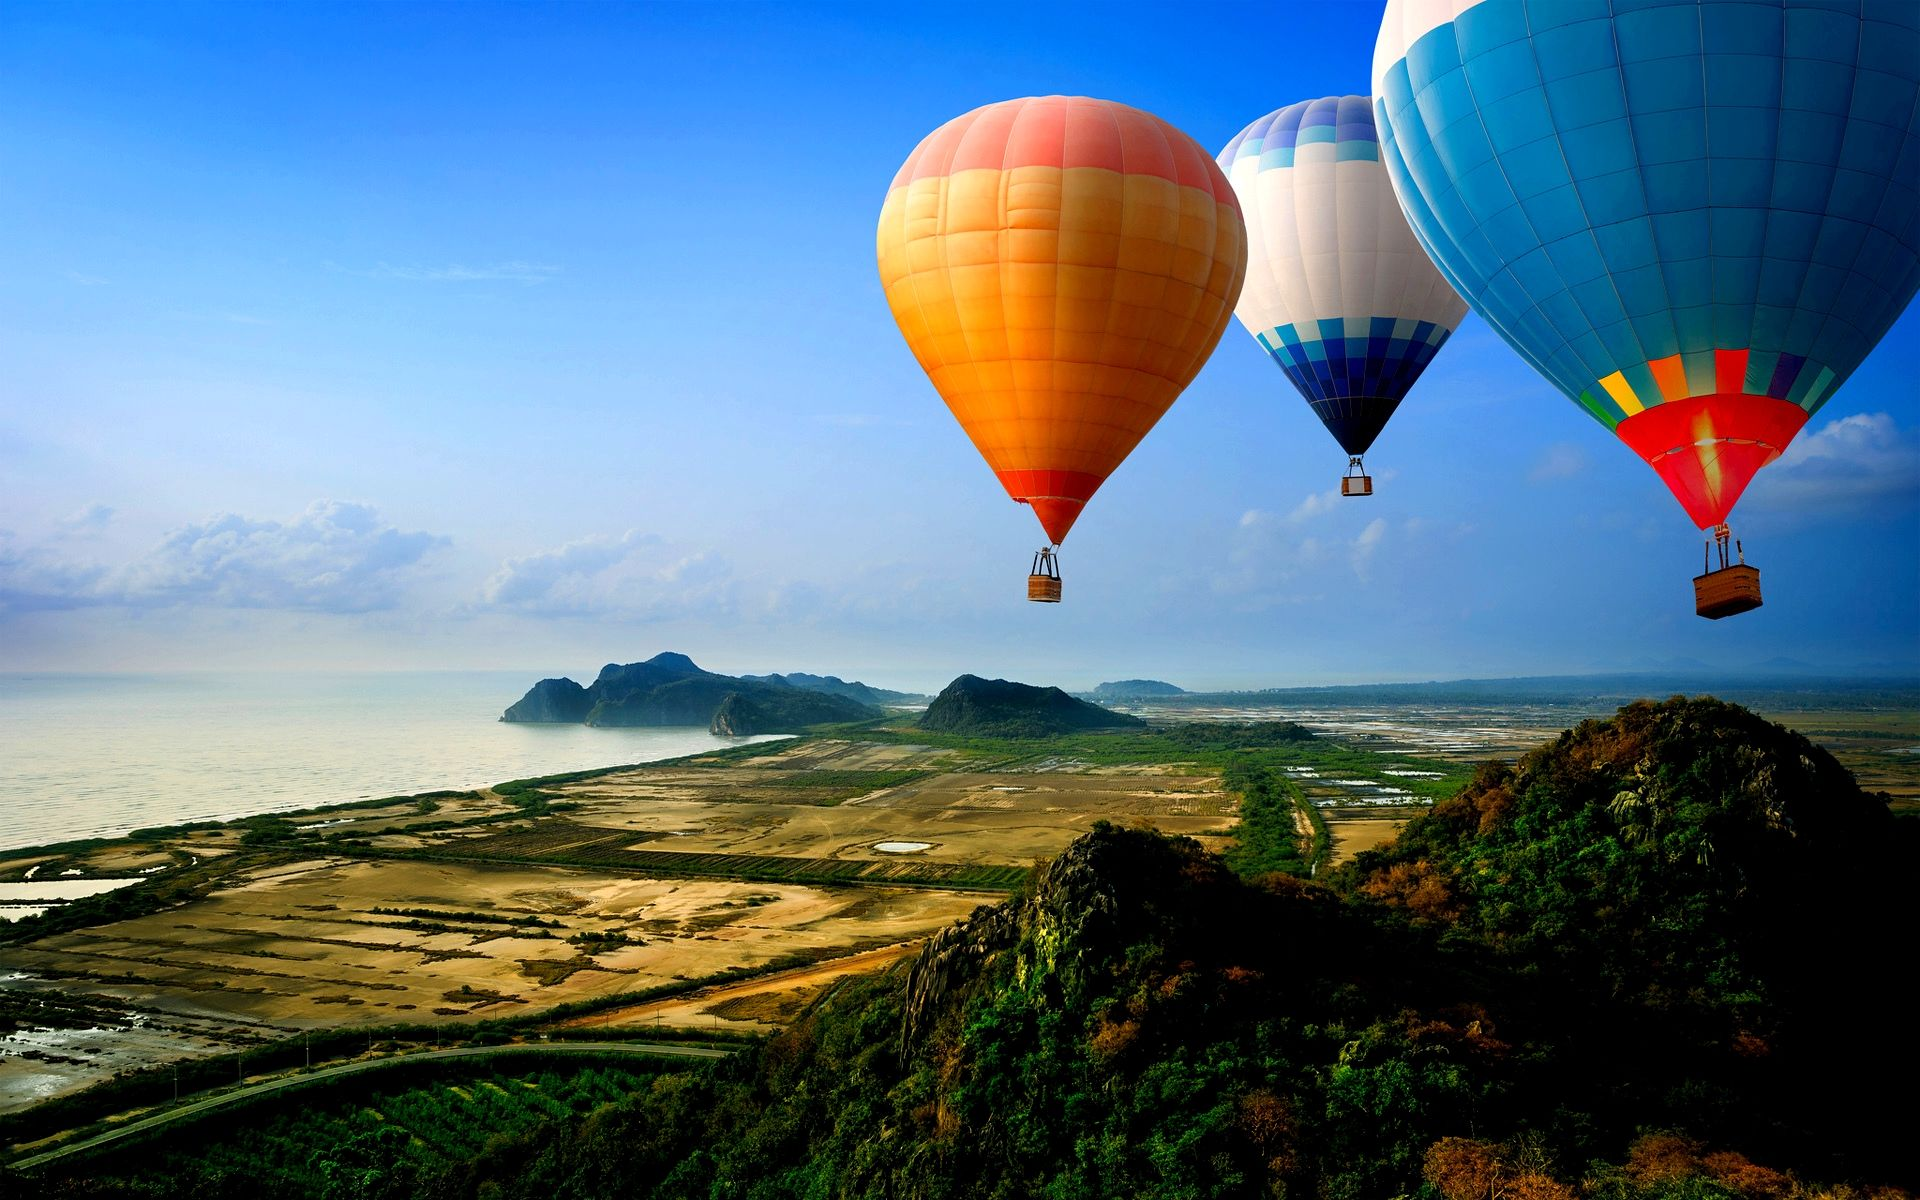 Hd Hot Air Balloons Wallpaper Download Free 131829 Hot Air